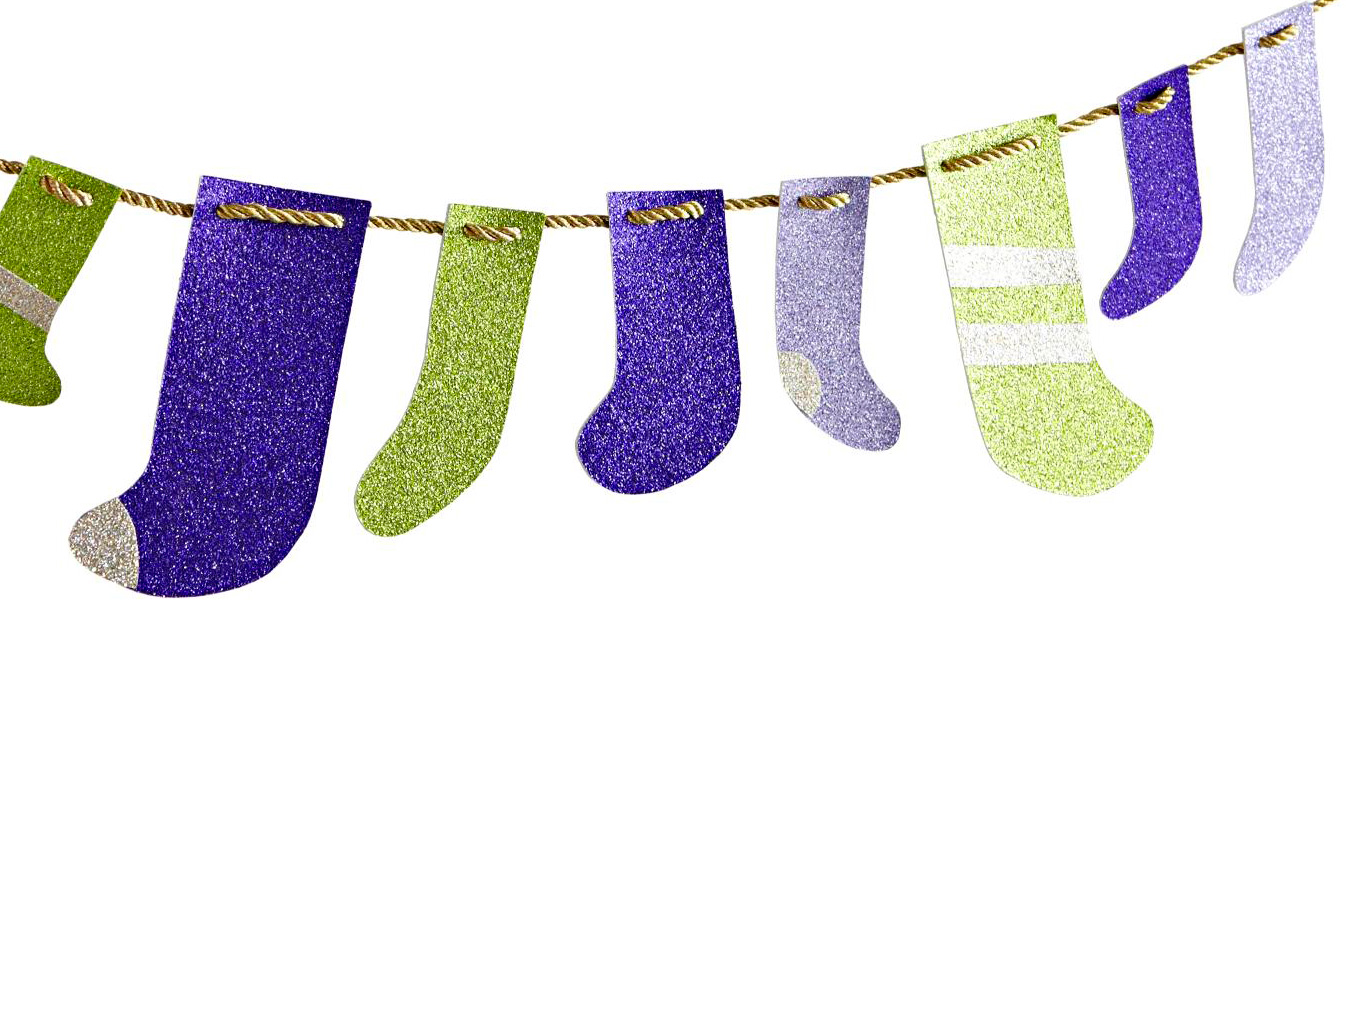 Mini glittery stockings garland